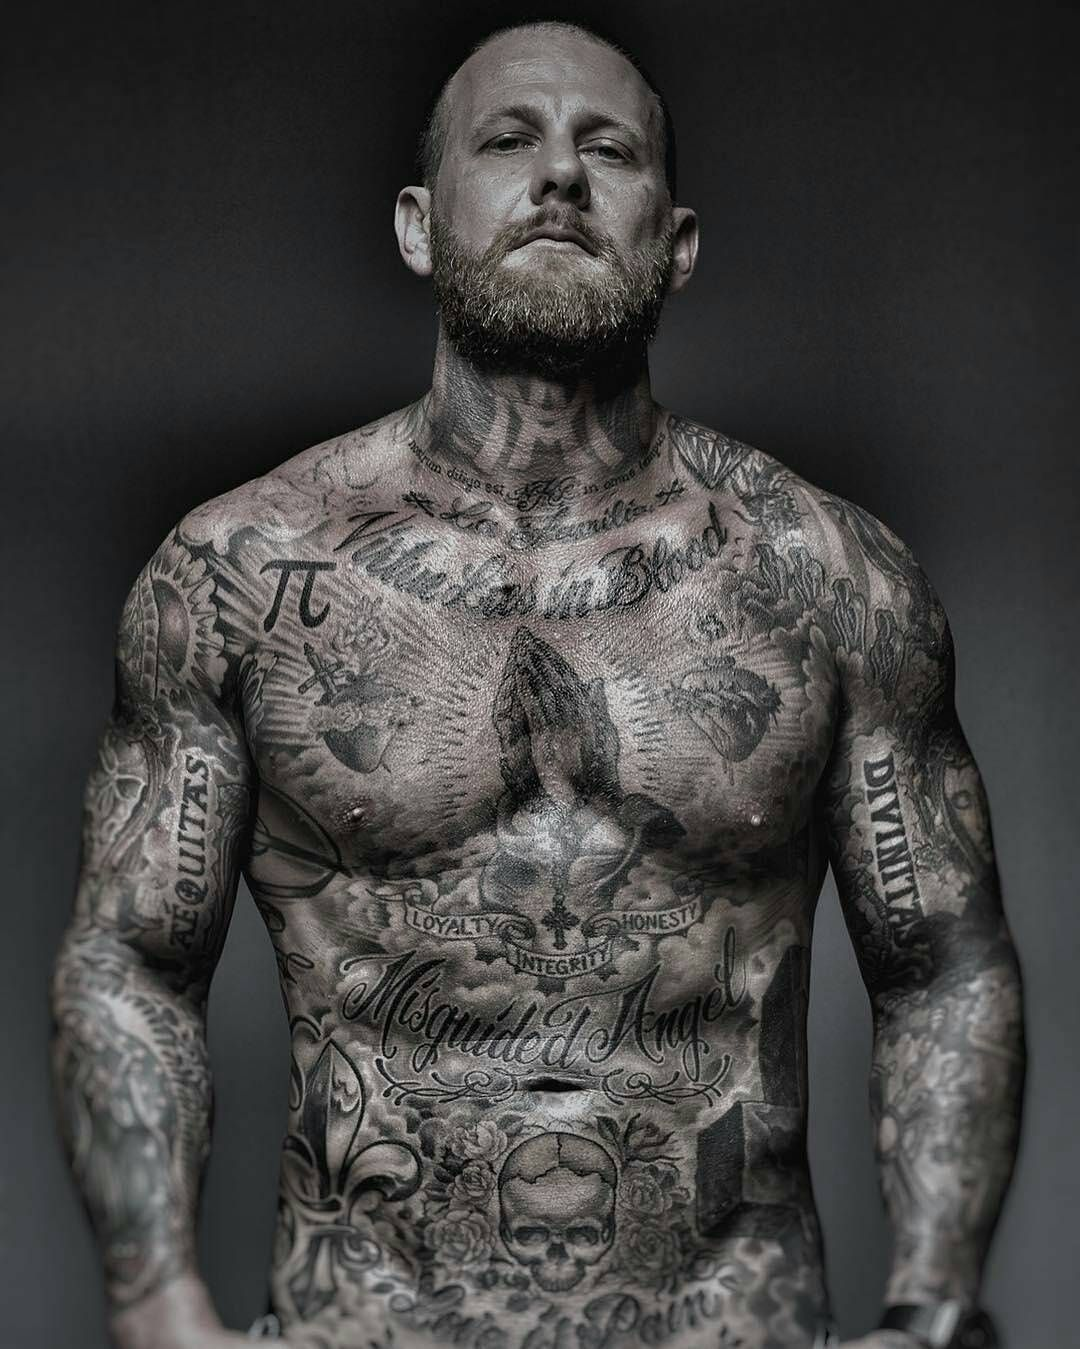 Image May Contain 1 Person Body Tattoo Design Full Body Tattoo Cool Chest Tattoos